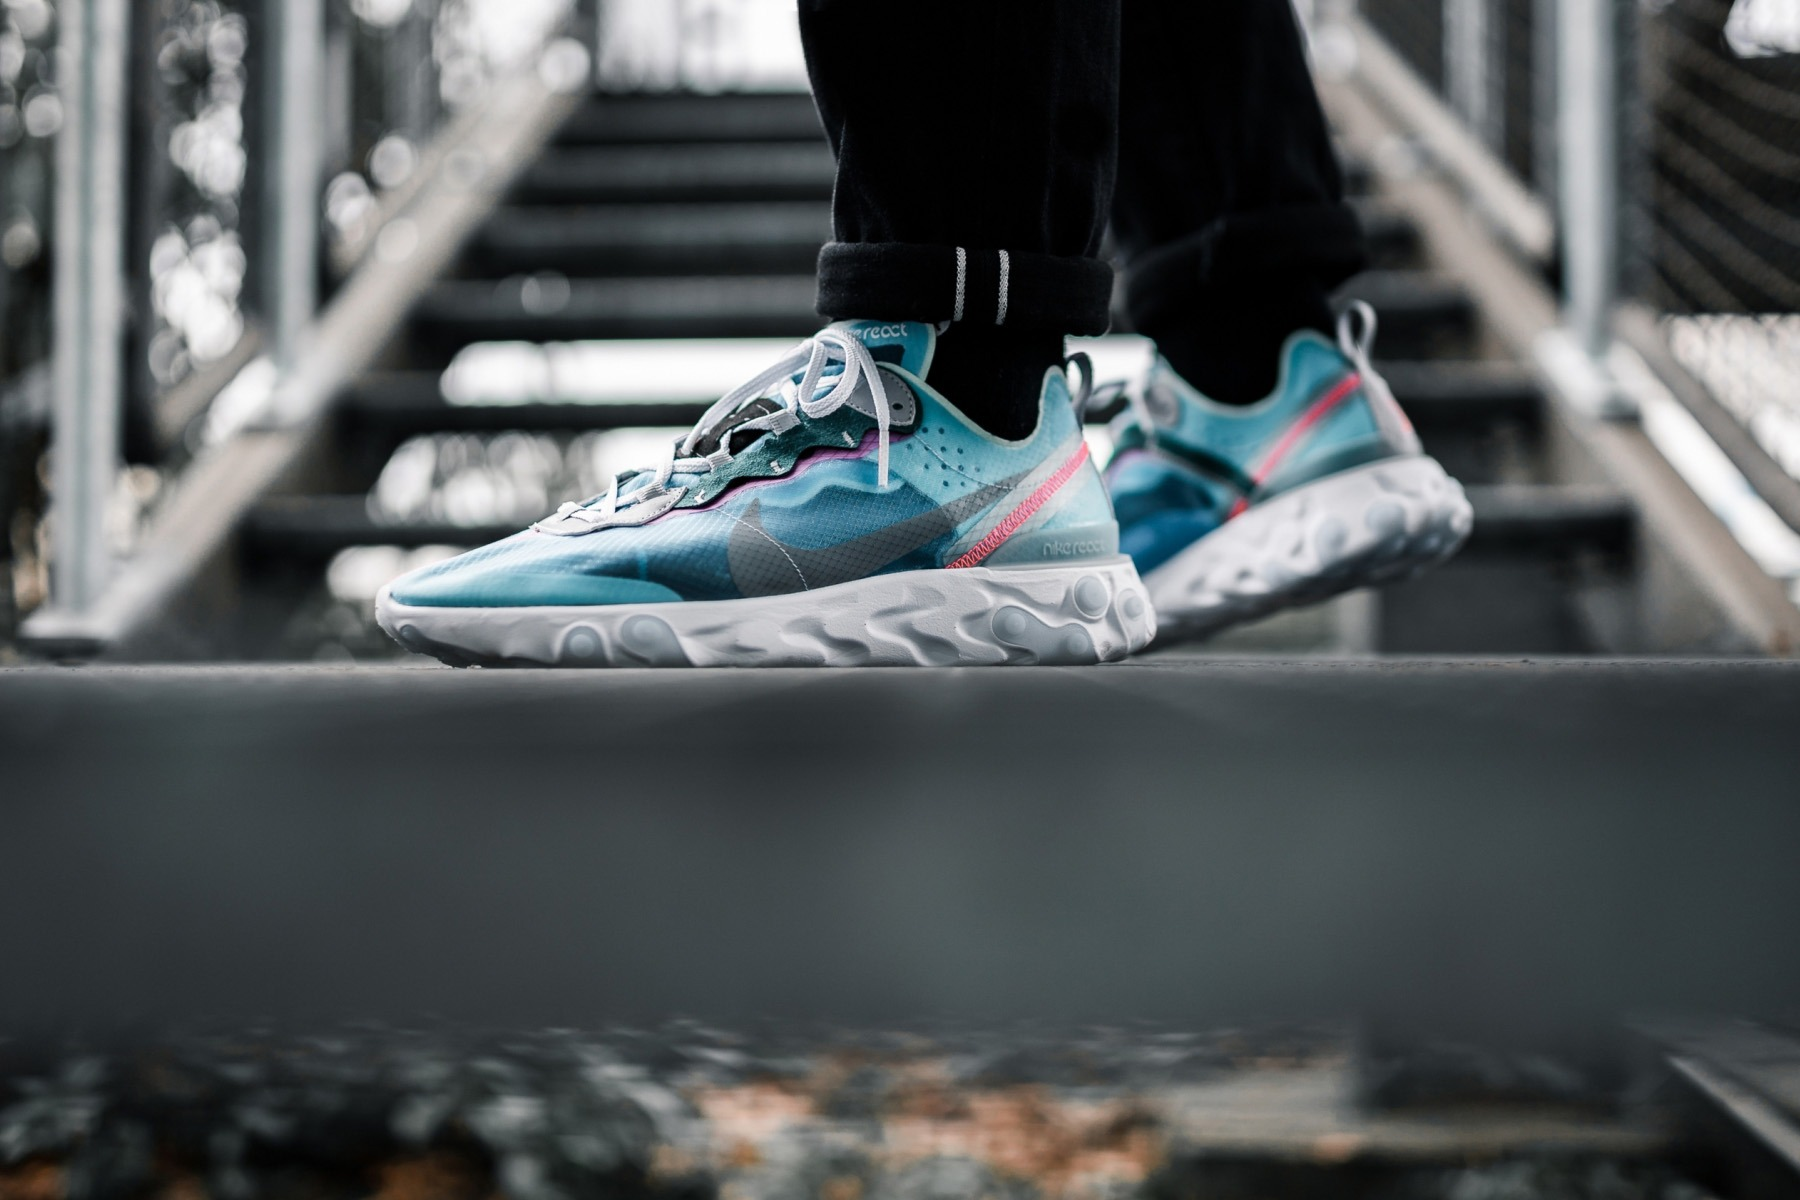 fashion outlet store sale for whole family Nike React Element 87 in Royal Tint for Spring 2019 - EUKICKS